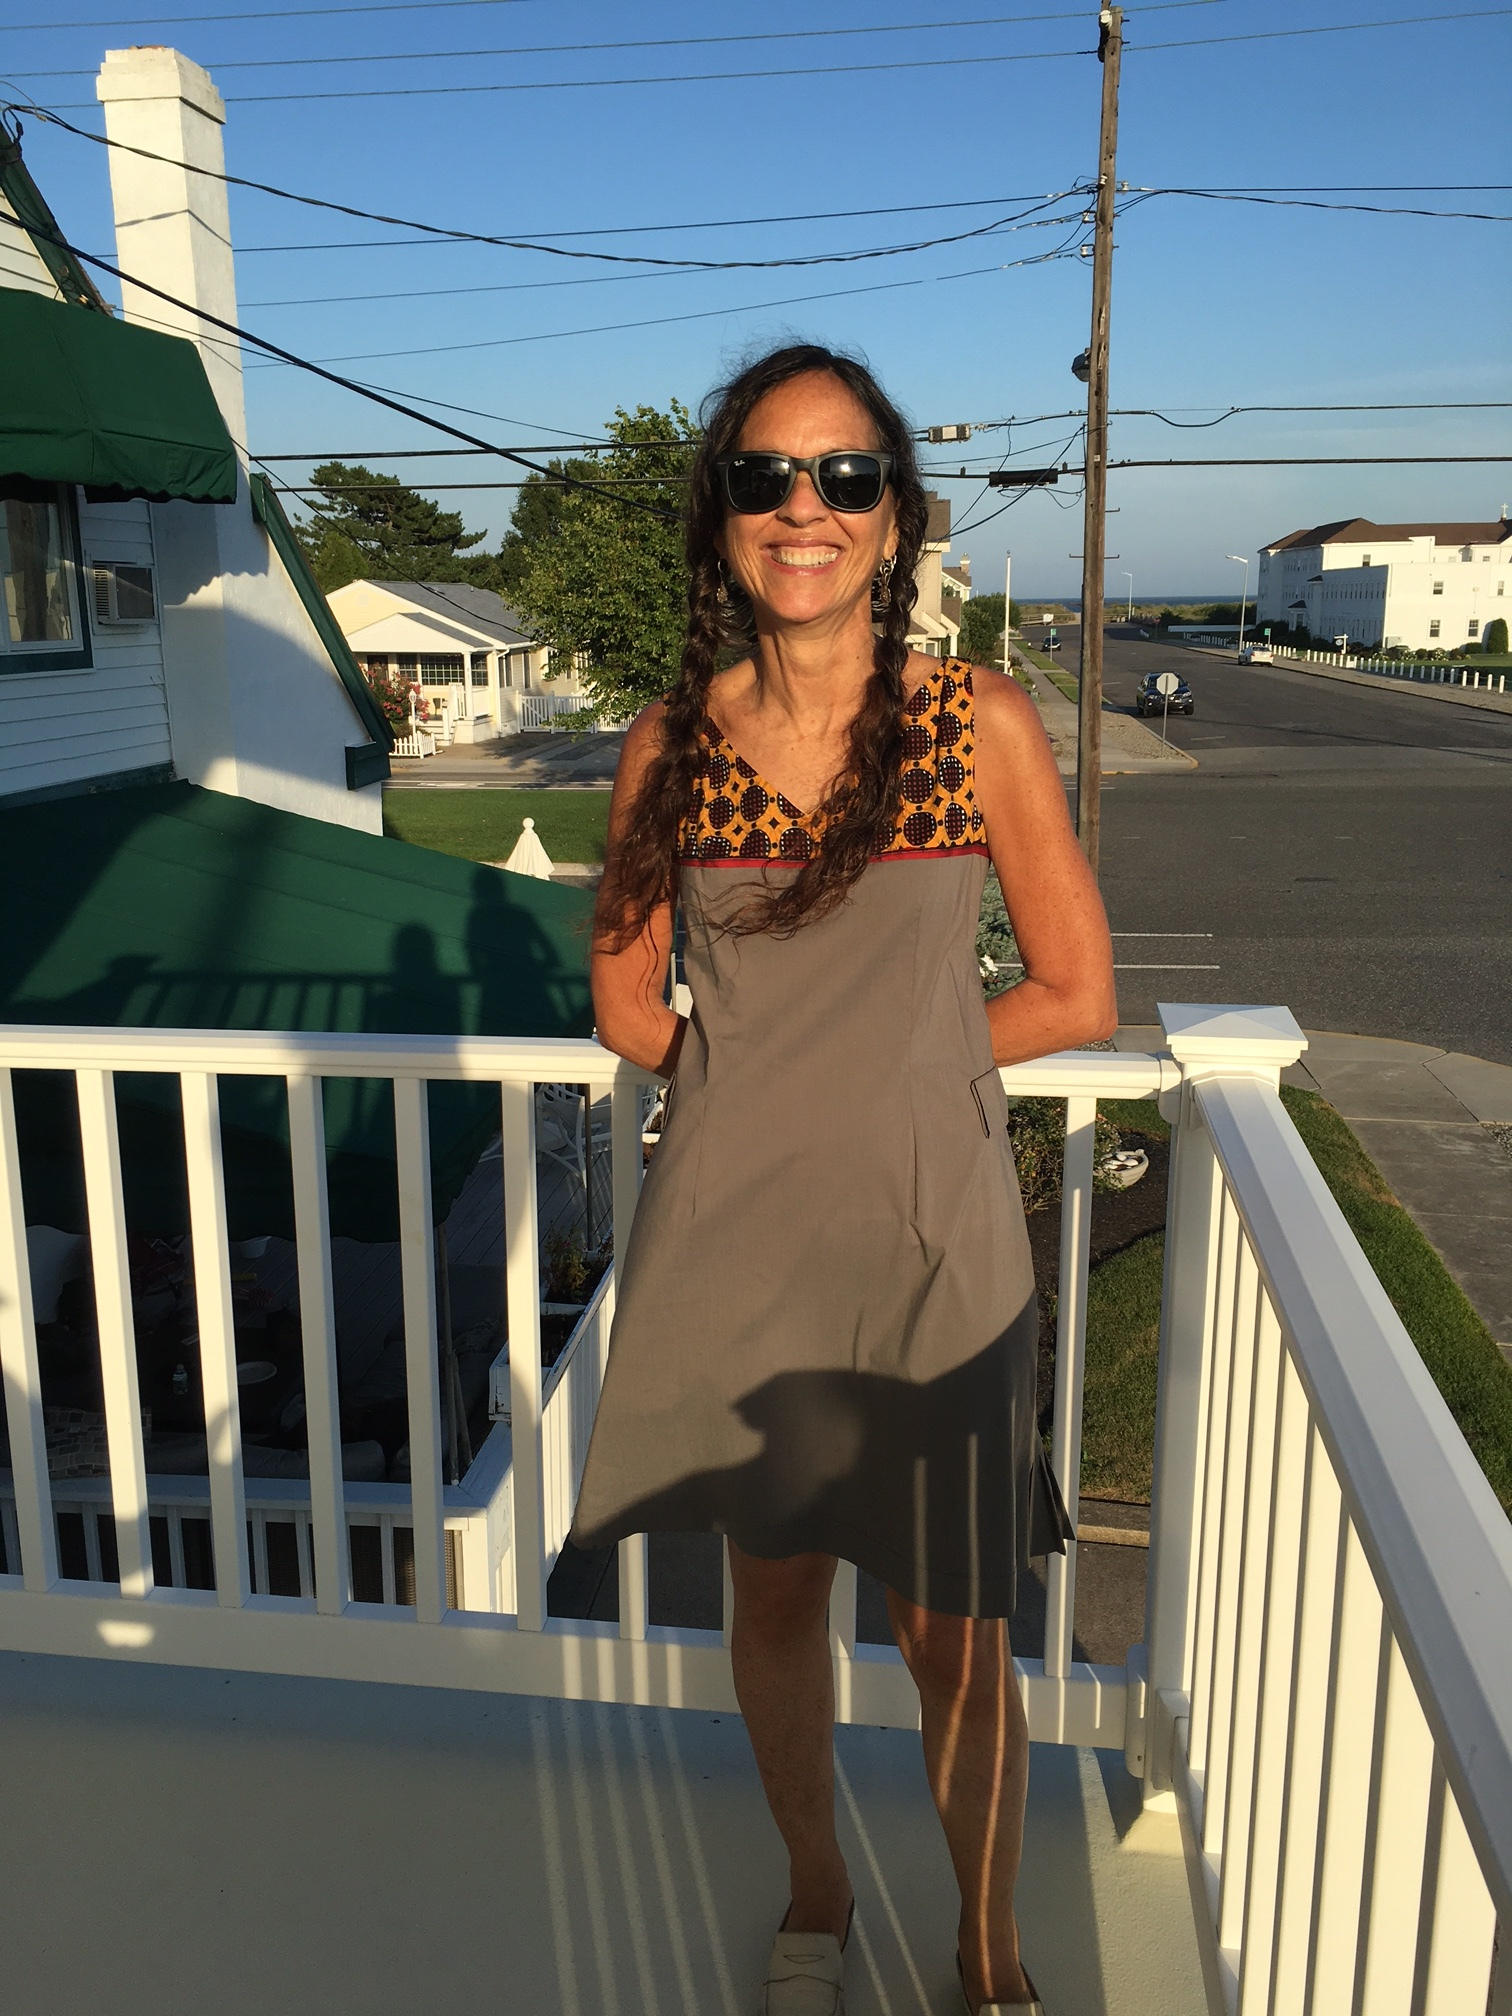 Jill is wearing a grey cotton A-line dress with an African print bodice and red selvage details at the Jersey shore.  the dress also has side pleats which are not visible in the photo.  really no accessories needed except a great pair of sunglasses and shoes.